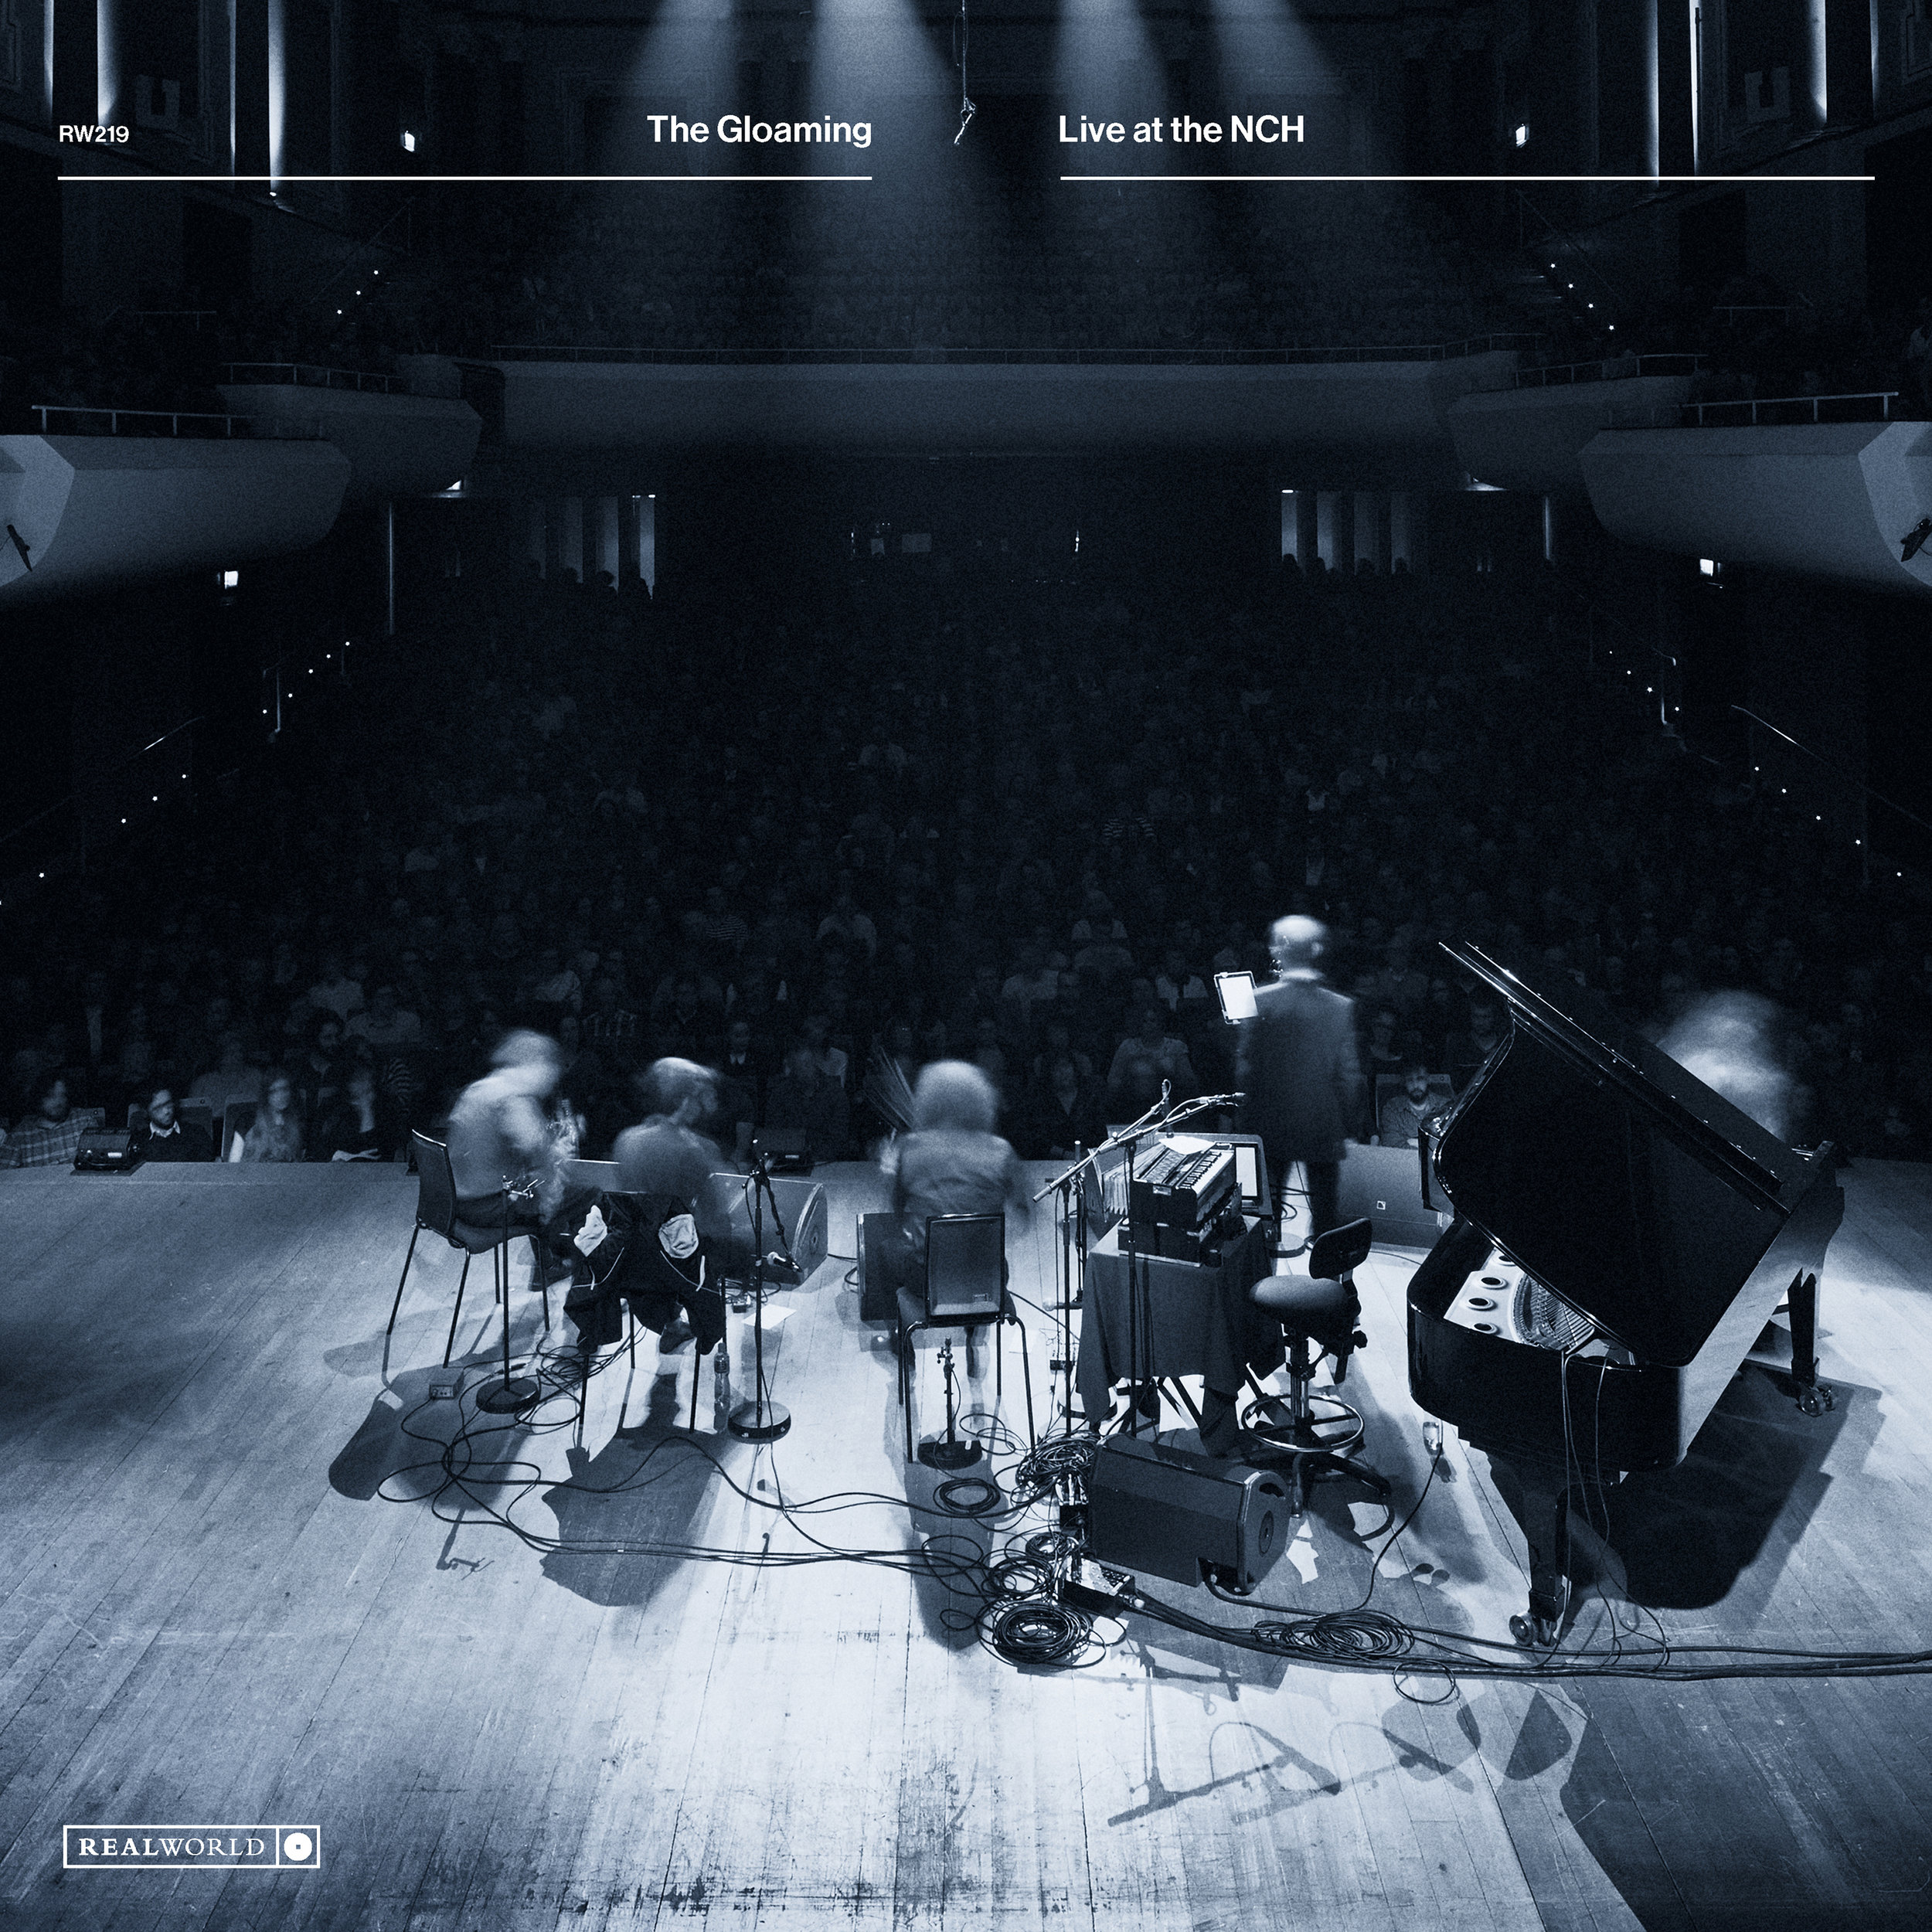 The Gloaming_Live at the NCH.jpg